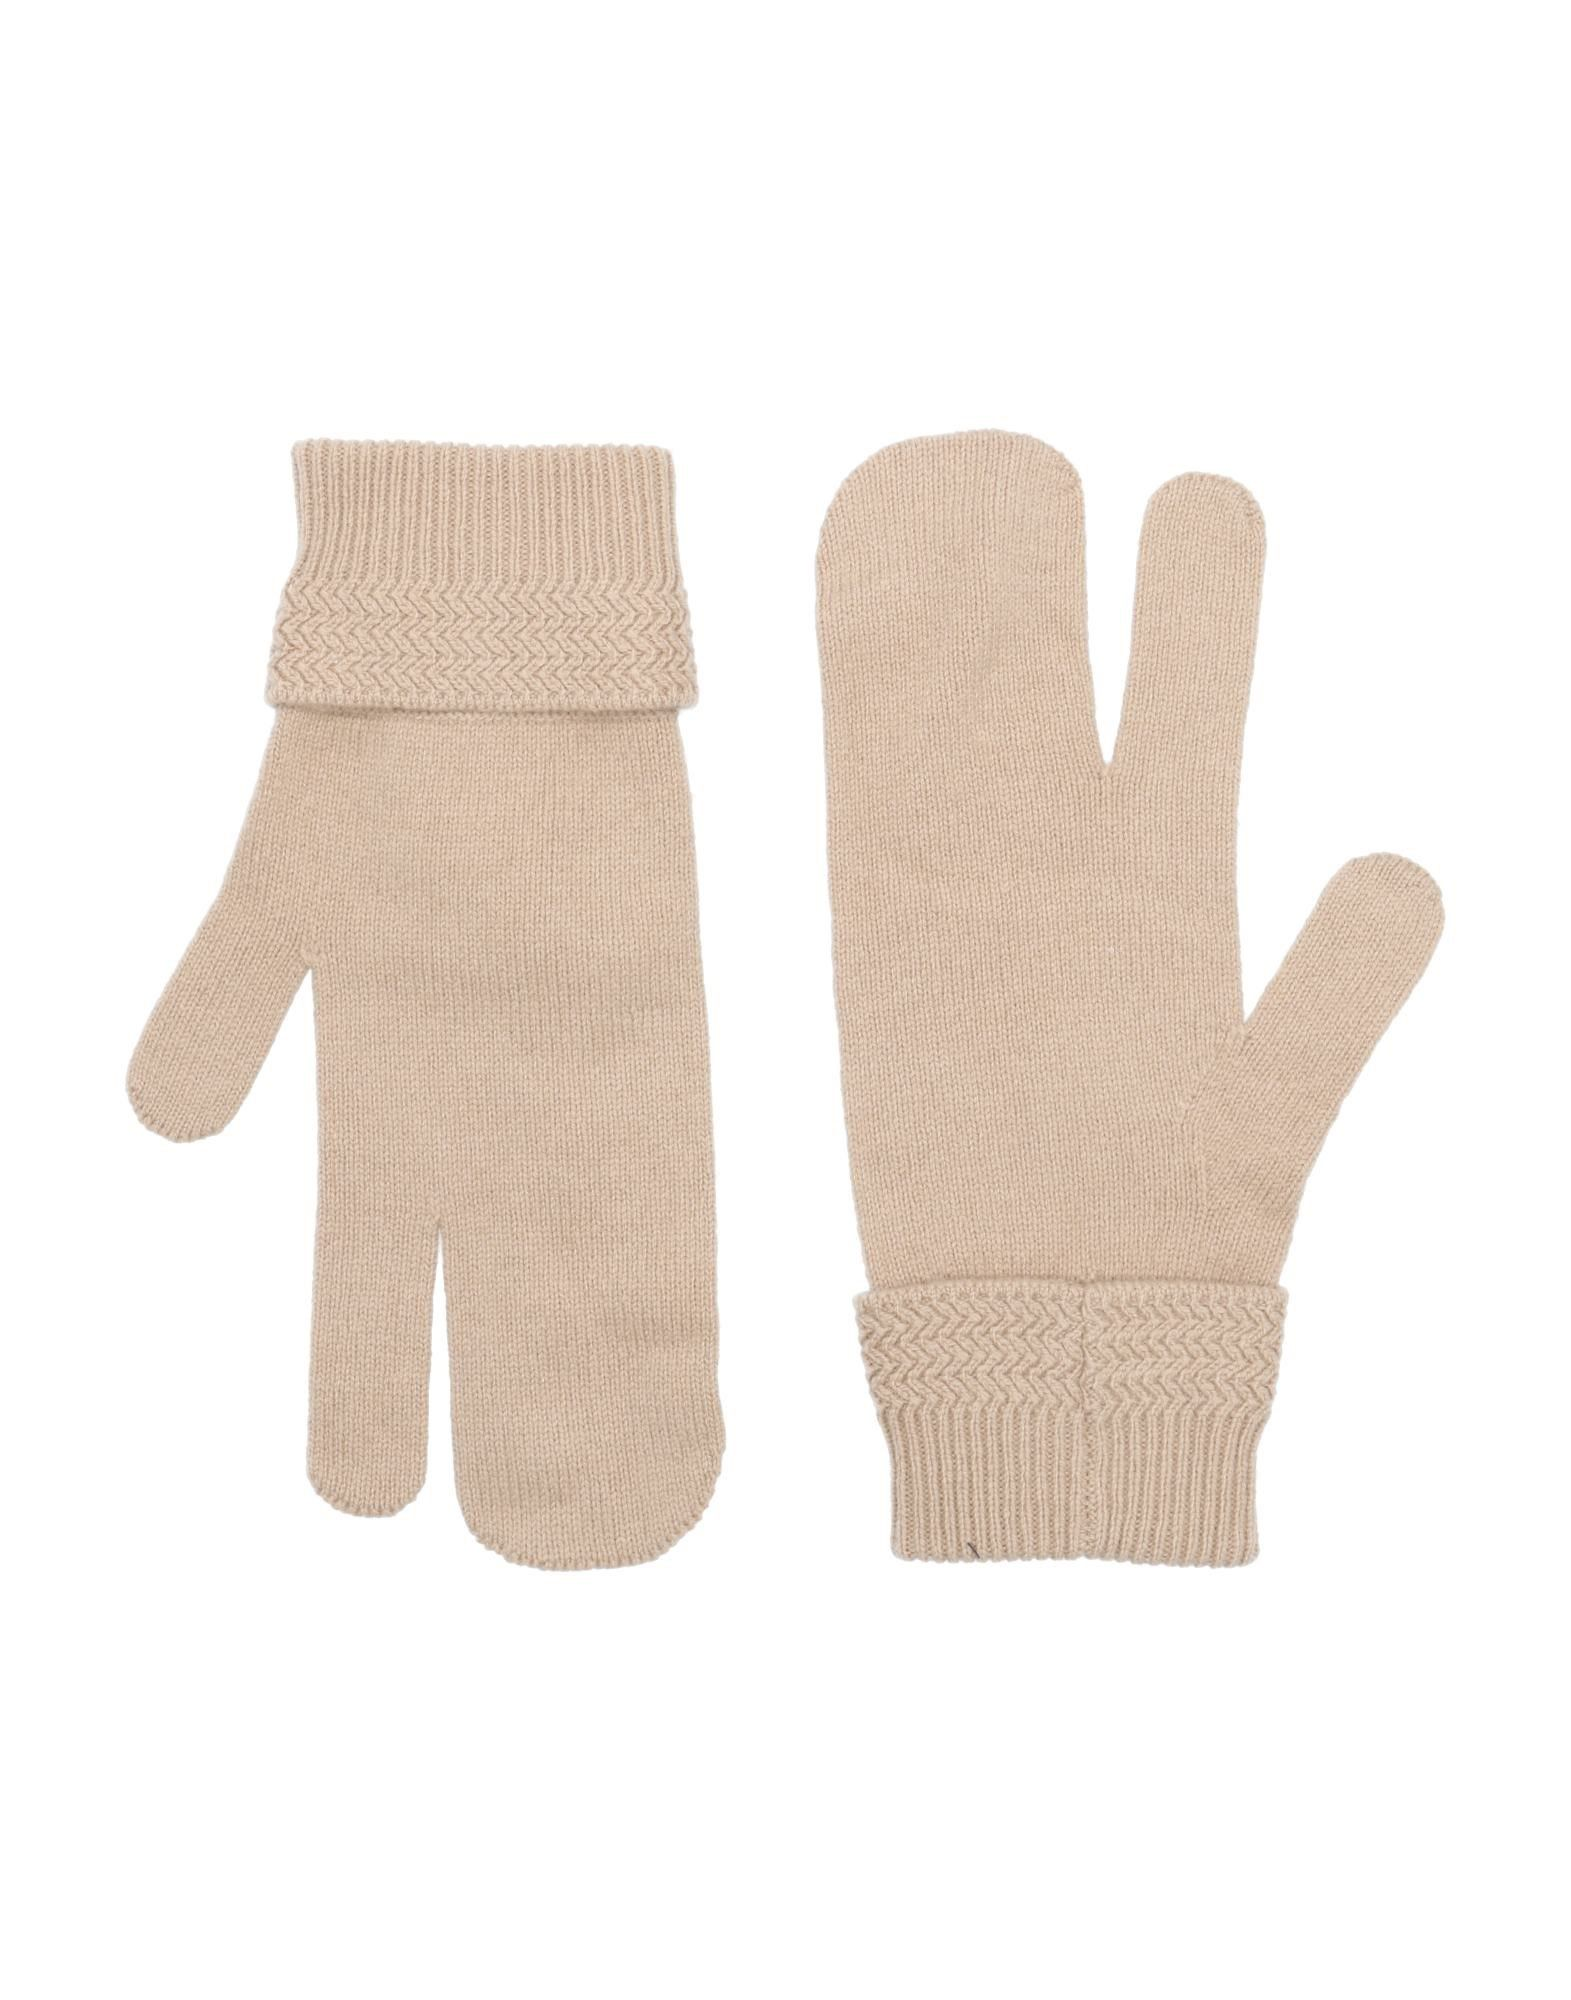 MAISON MARGIELA Gloves. knitted, mélange, solid color, medium-weight knit. 90% Wool, 10% Cashmere